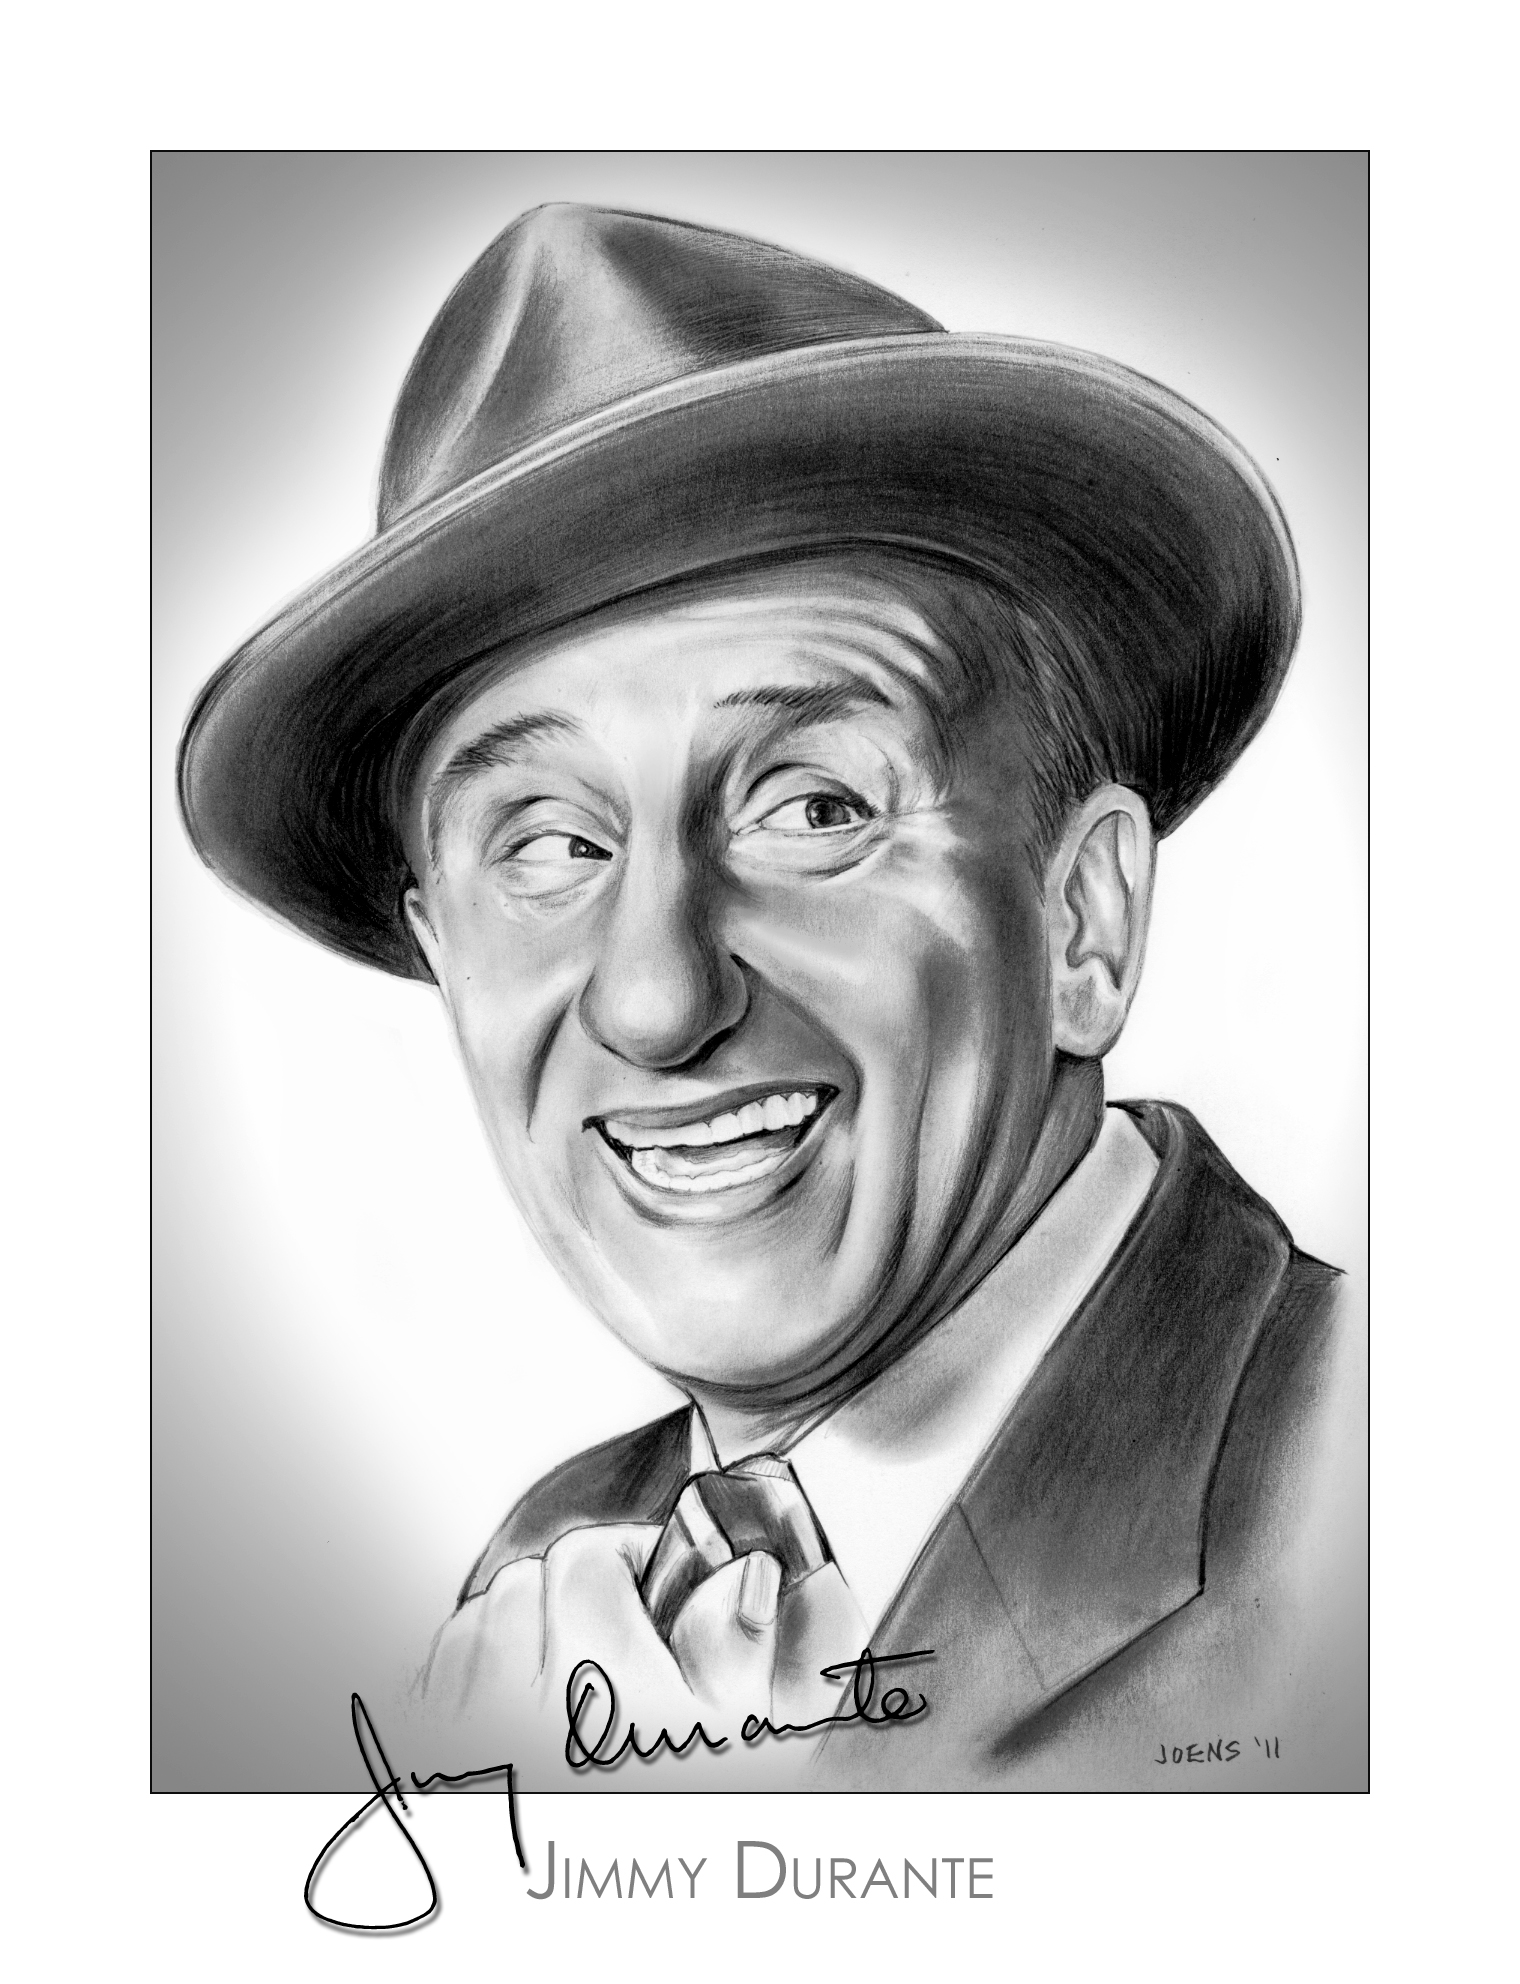 jimmy durante pronunciationjimmy durante inka dinka doo, jimmy durante simpsons, jimmy durante cartoon, jimmy durante wikipedia, jimmy durante smile, jimmy durante pronunciation, jimmy durante - as time goes by, jimmy durante make someone happy lyrics, jimmy durante i'll be seeing you lyrics, jimmy durante stay go, jimmy durante glory of love lyrics, jimmy durante buster keaton, jimmy durante the glory of love, jimmy durante cha cha cha